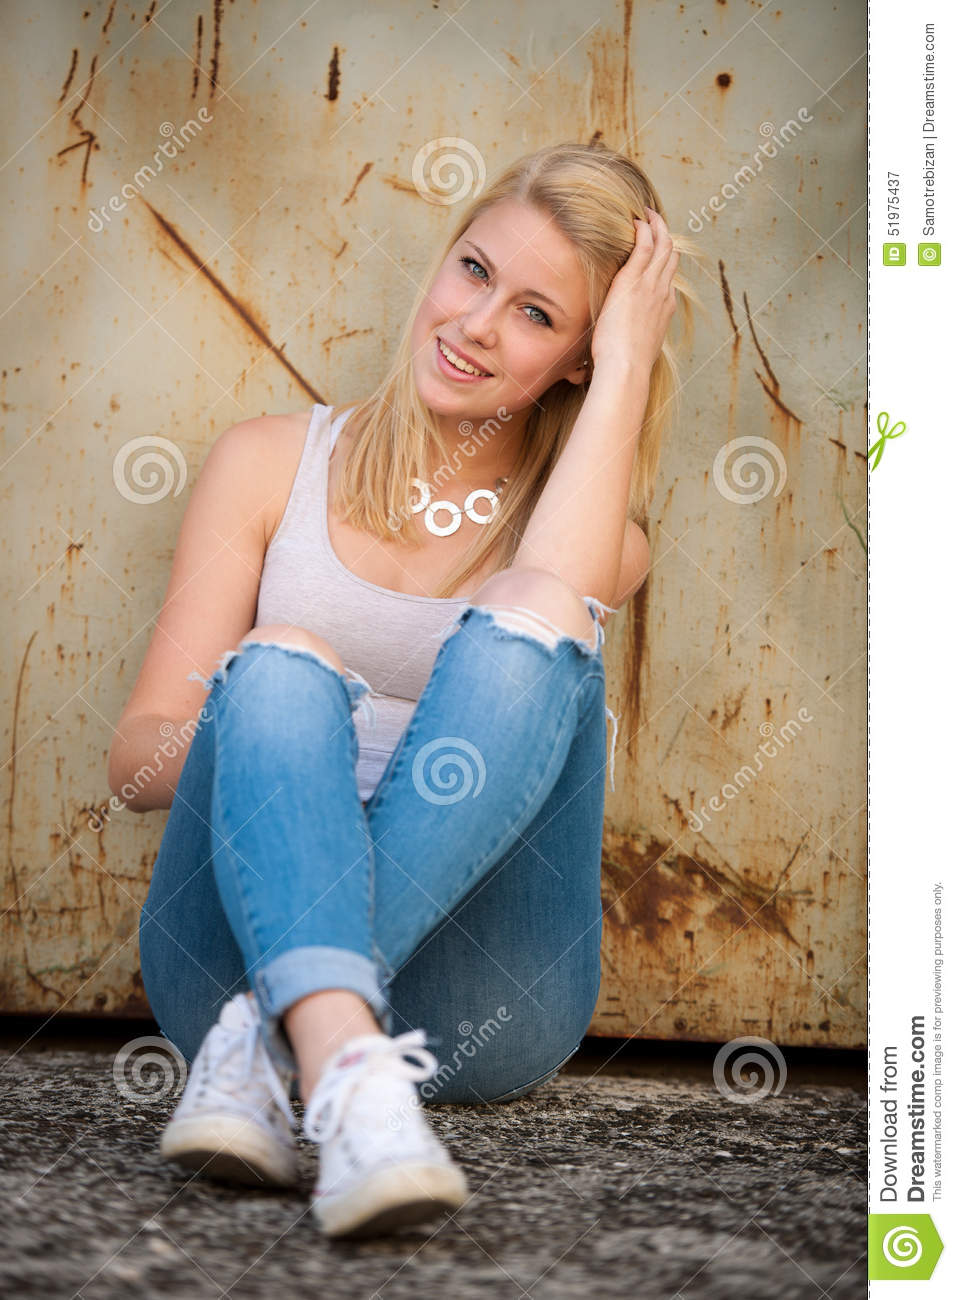 Young blonde caucasian girl alone on a street